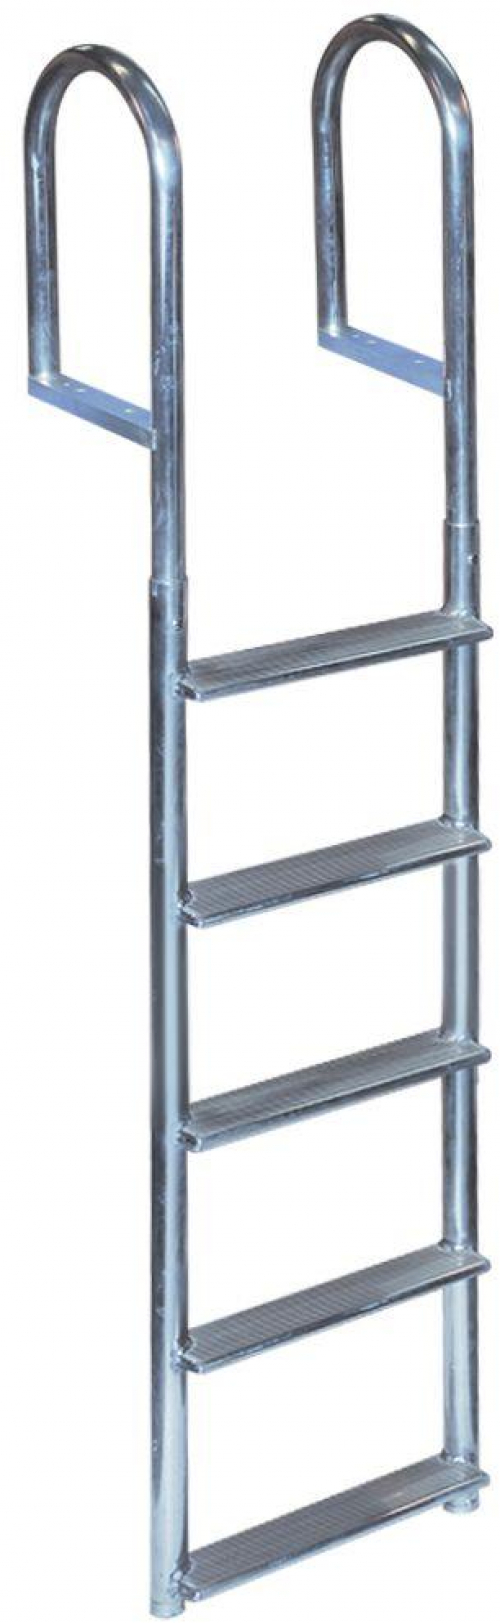 Details about Tommy Docks 5-Step Wide Rung Aluminum Dock Ladder